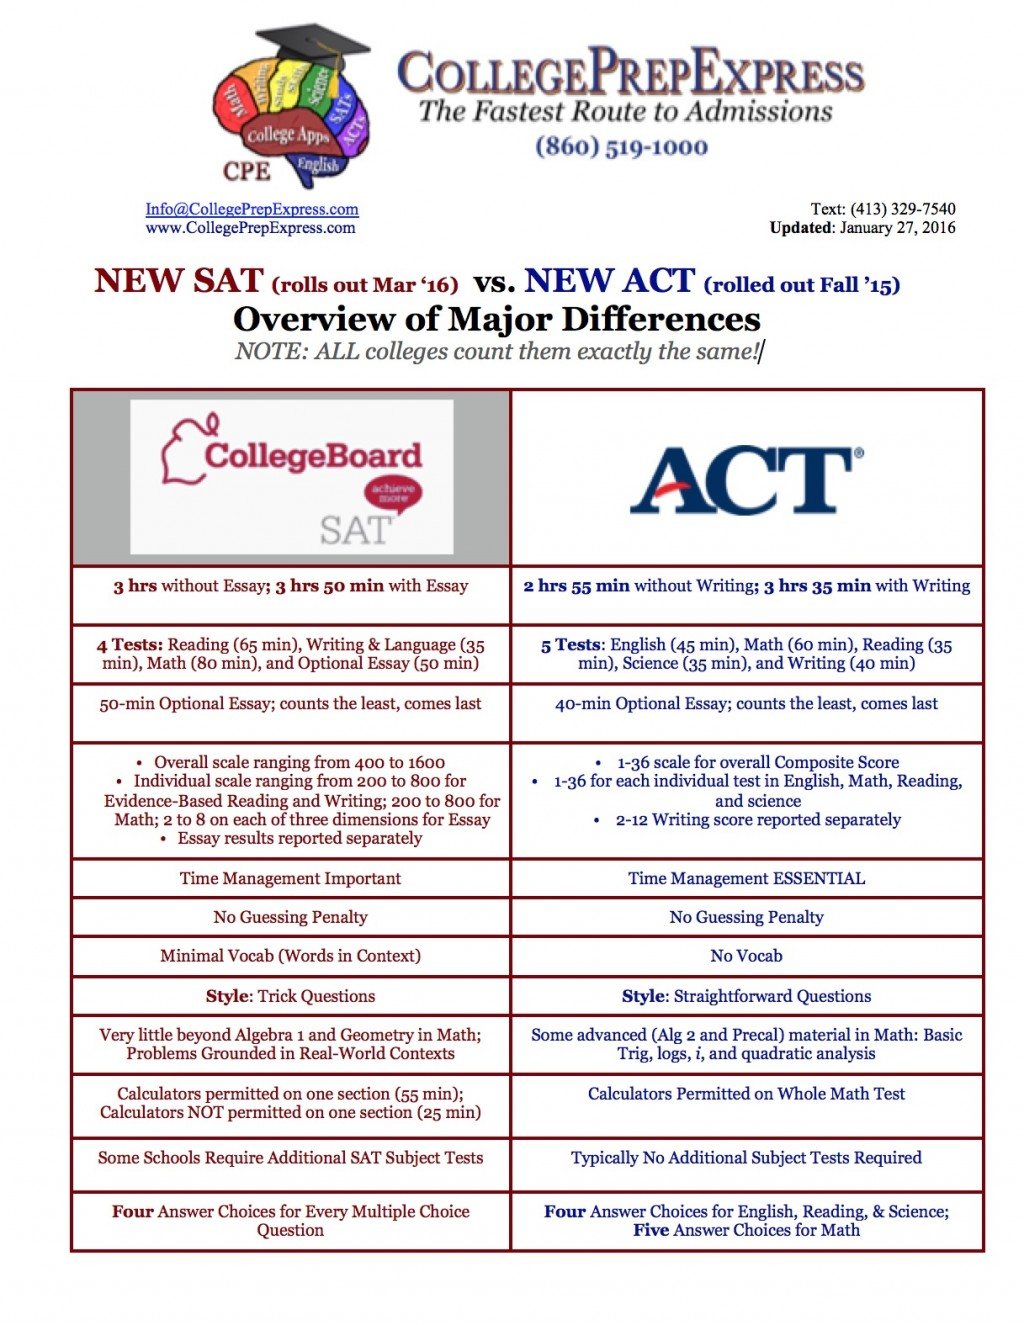 011 New Sat Essay Vs Act Overview Of Major Differences Unforgettable Score Distribution Template Pdf Large